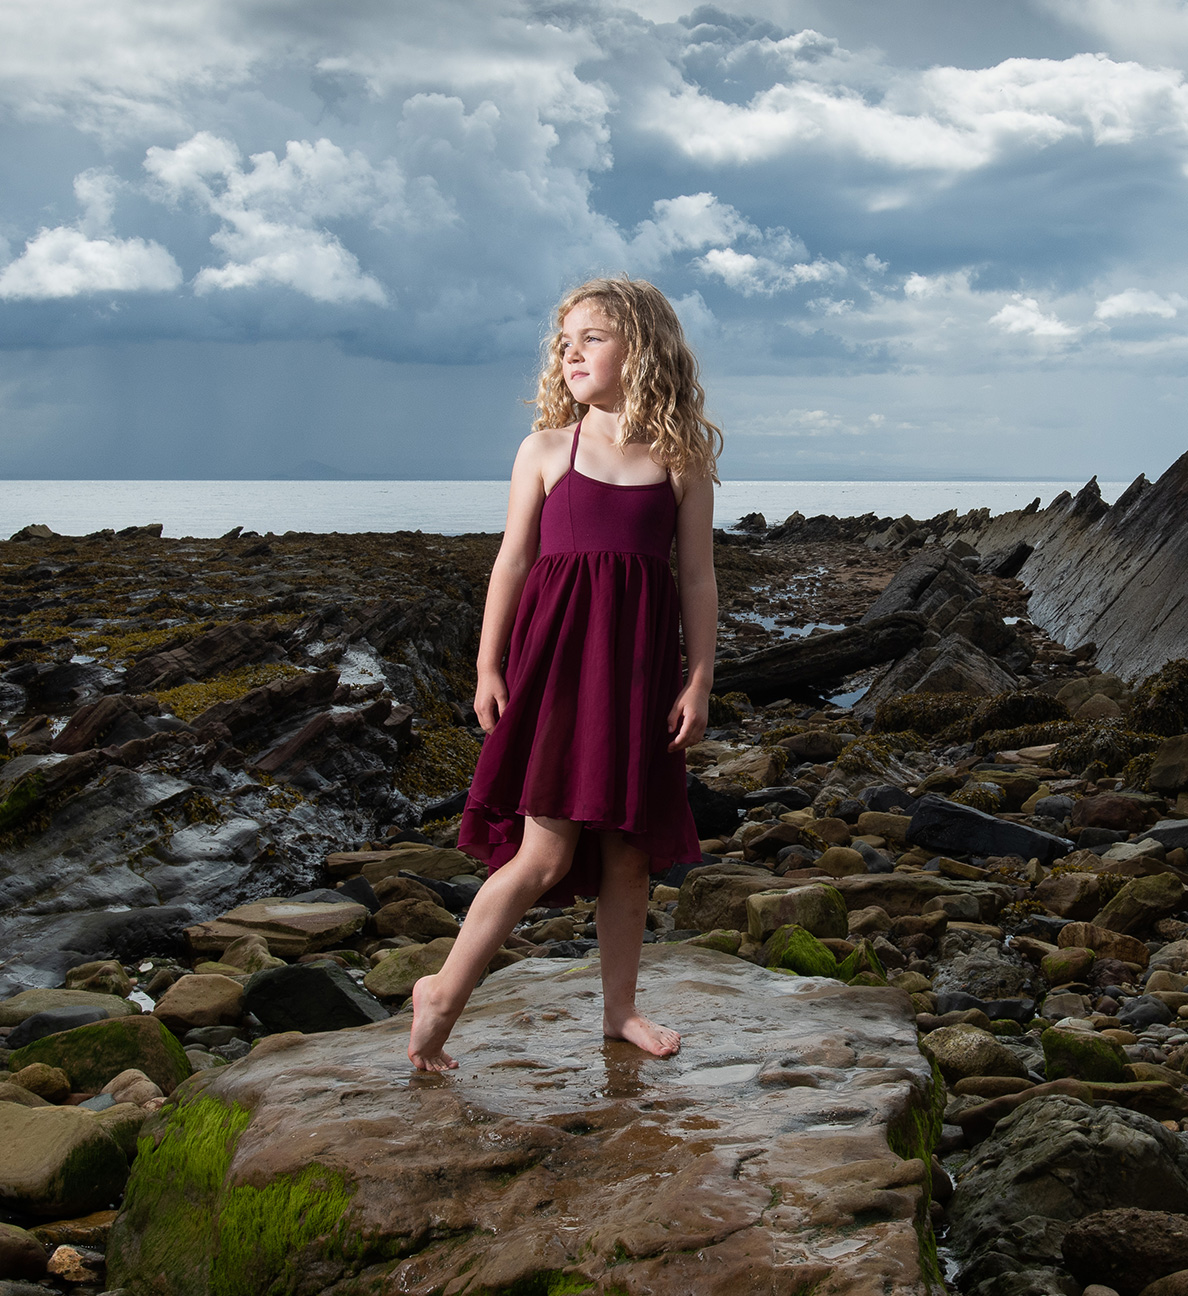 girl in maroon dress stood on rocks